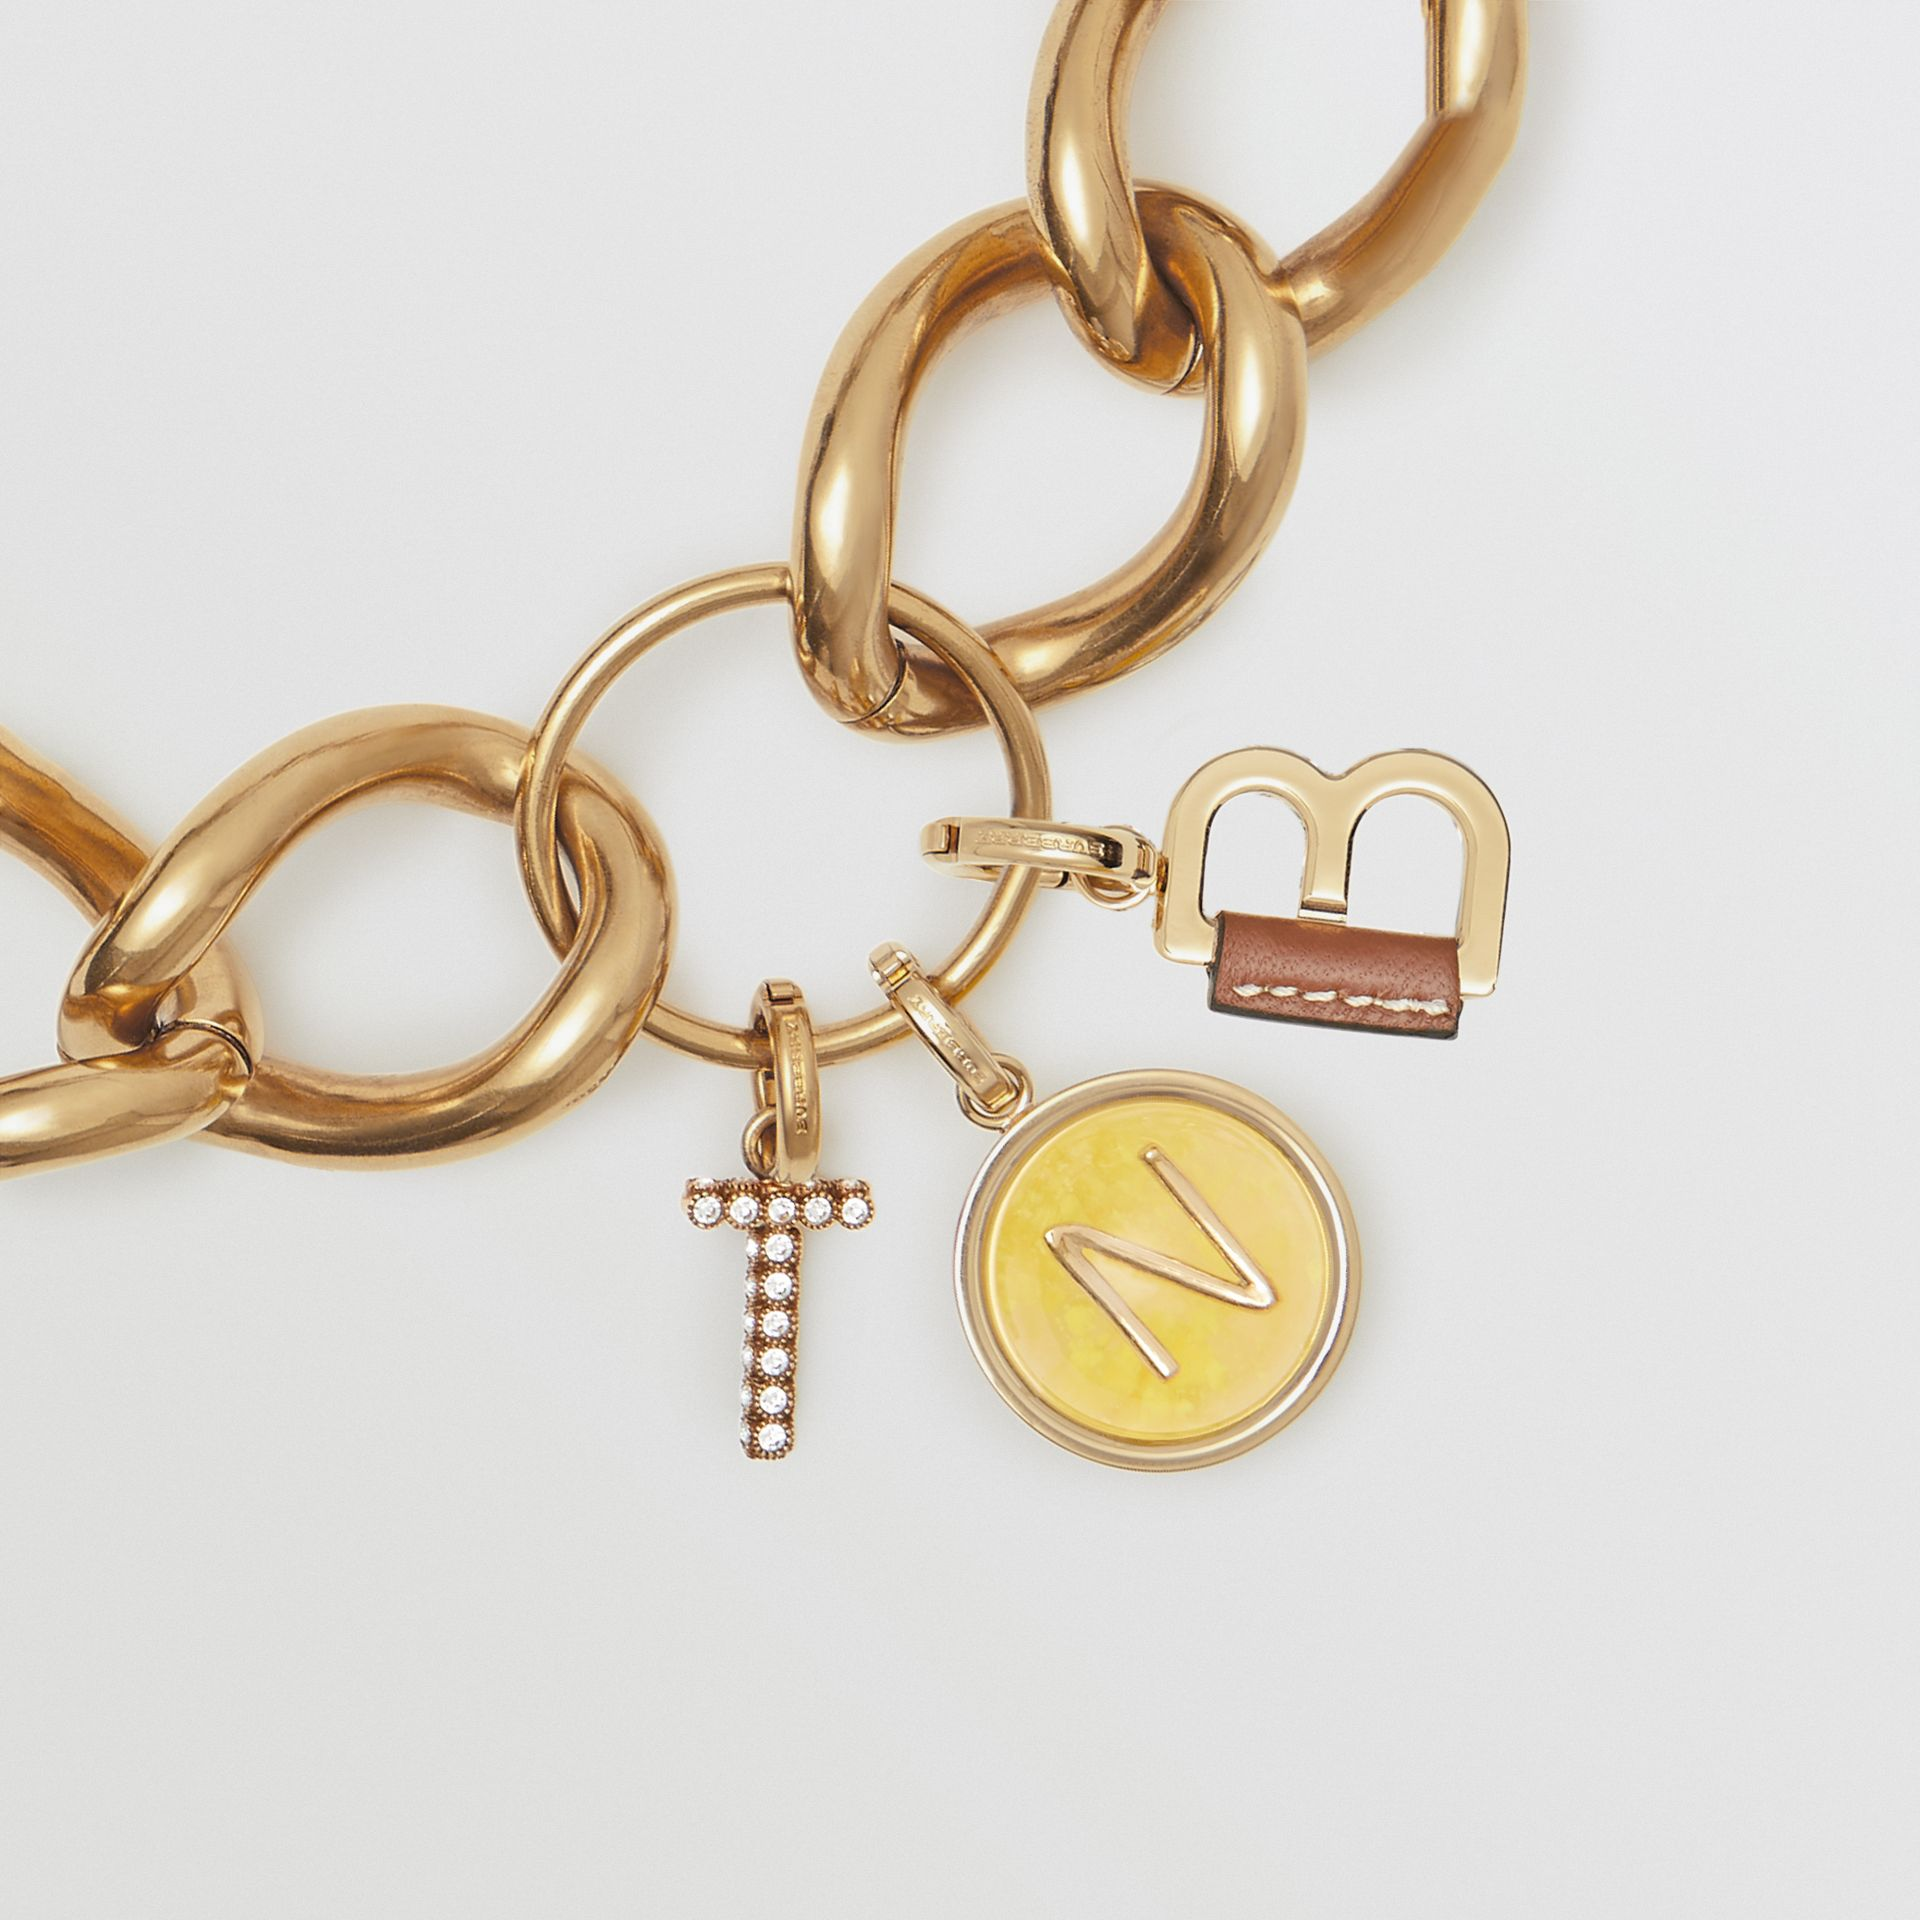 Marbled Resin 'N' Alphabet Charm in Gold/mimosa - Women | Burberry Singapore - gallery image 2